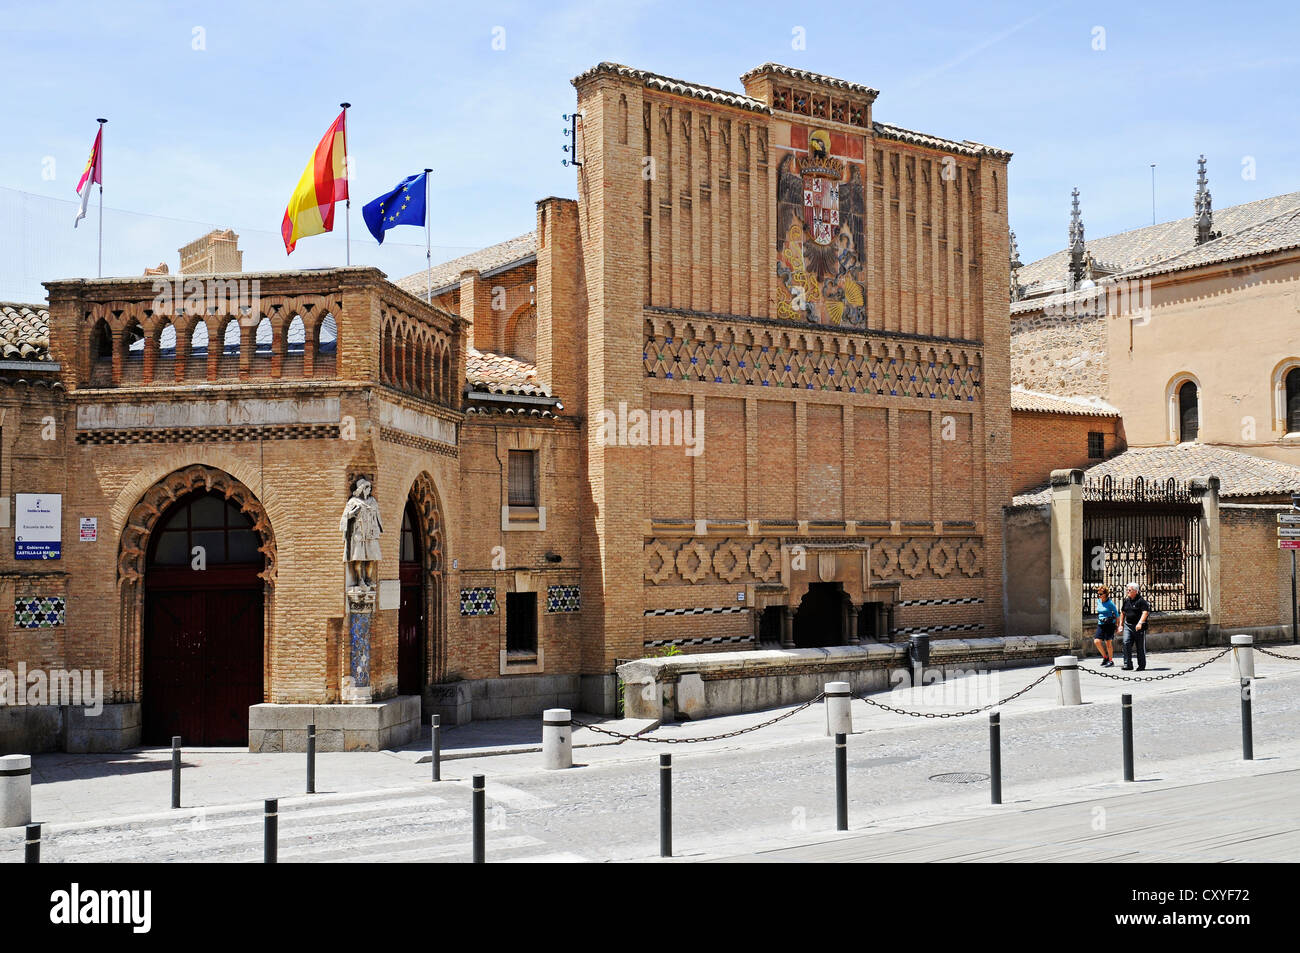 School of Art, University of San Juan de los Reyes, Toledo, Castile-La Mancha, Spain, Europe, PublicGround - Stock Image